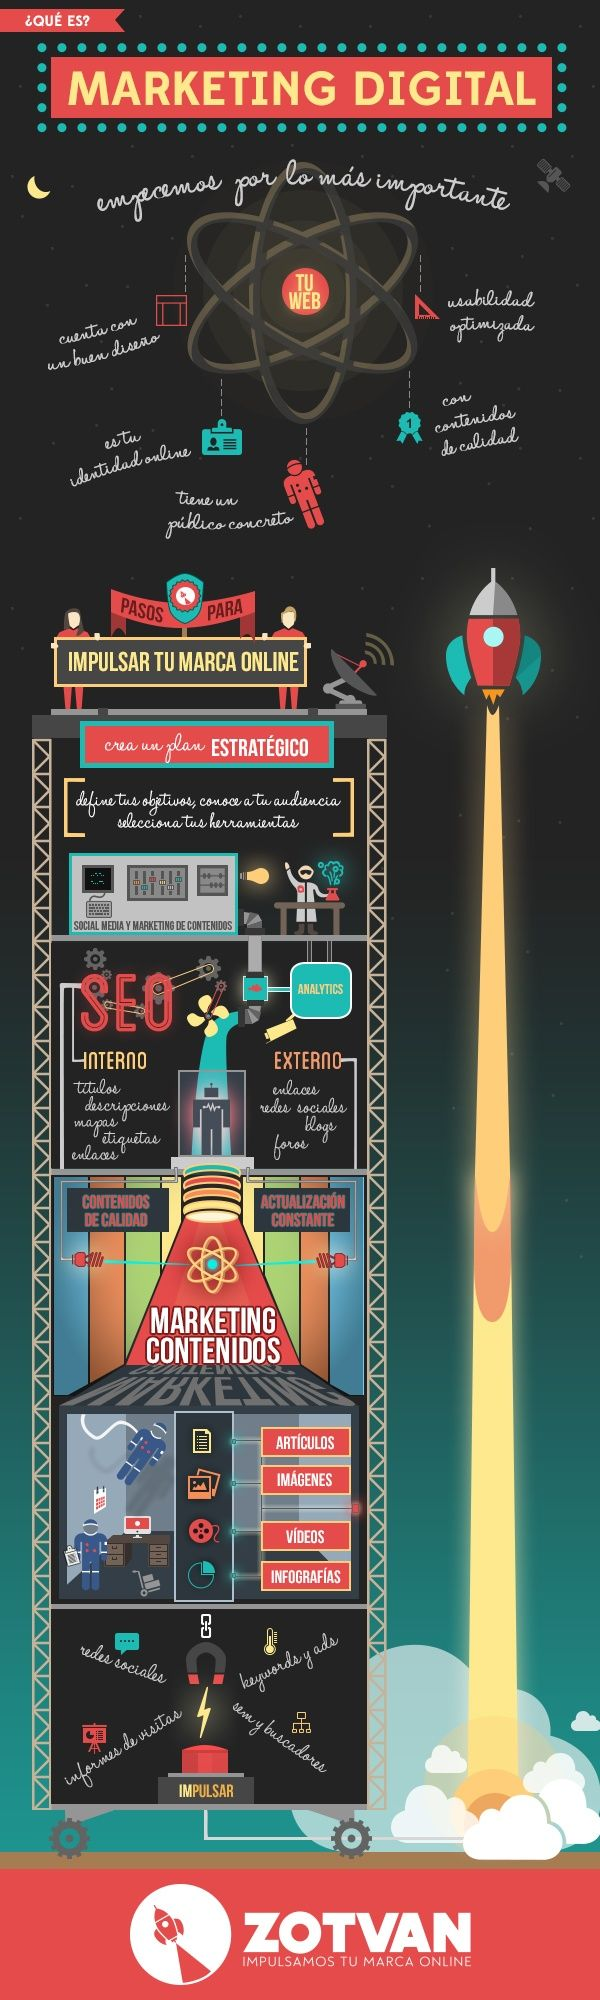 Marketing Digital para Dummies. | Social Geek